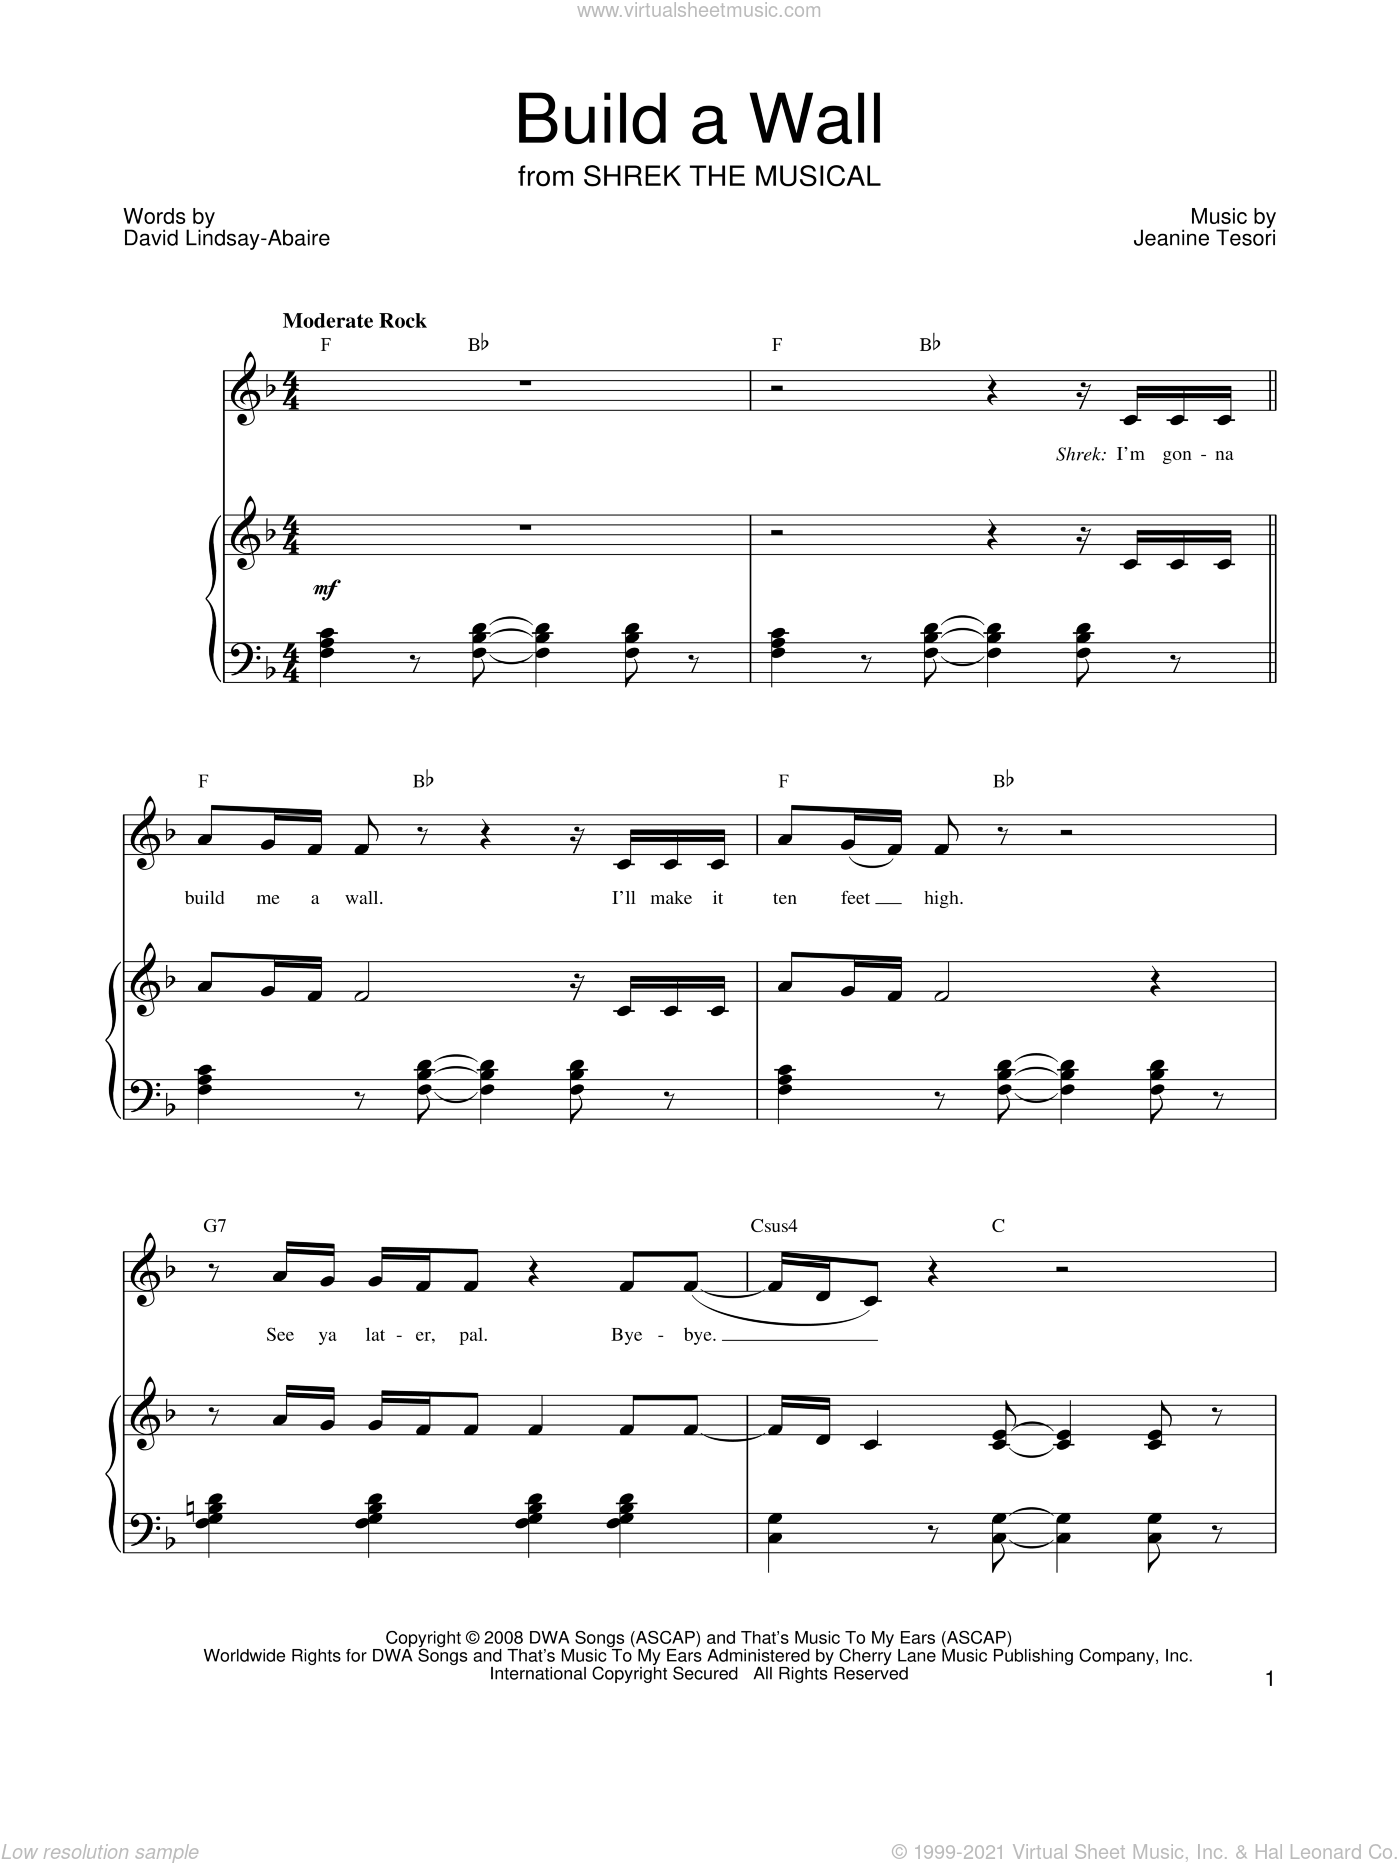 Build A Wall sheet music for voice, piano or guitar by Jeanine Tesori